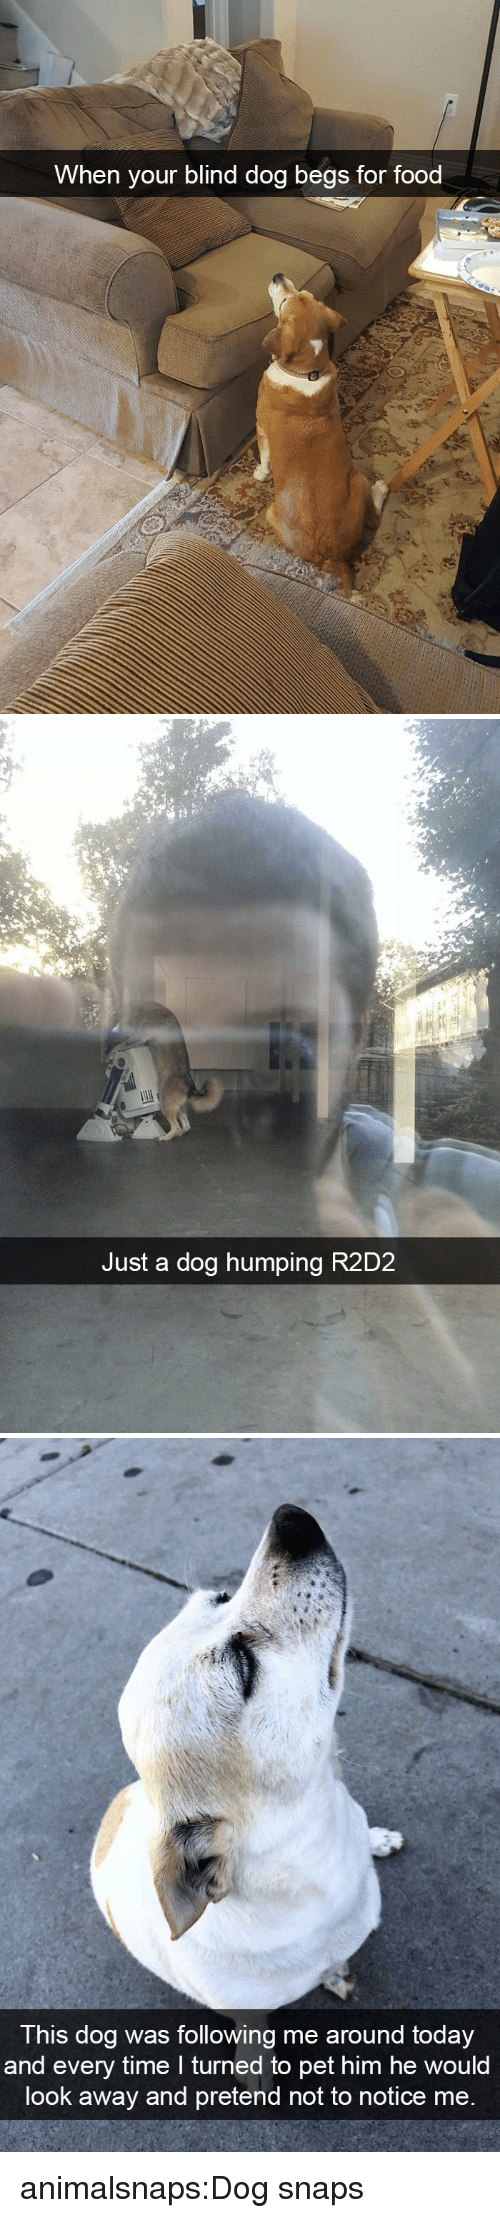 Food, Target, and Tumblr: When your blind dog begs for food   Just a dog humping R2D2   T his dog was following me around today  and every time I turned to pet him he would  look away and pretend not to notice me animalsnaps:Dog snaps